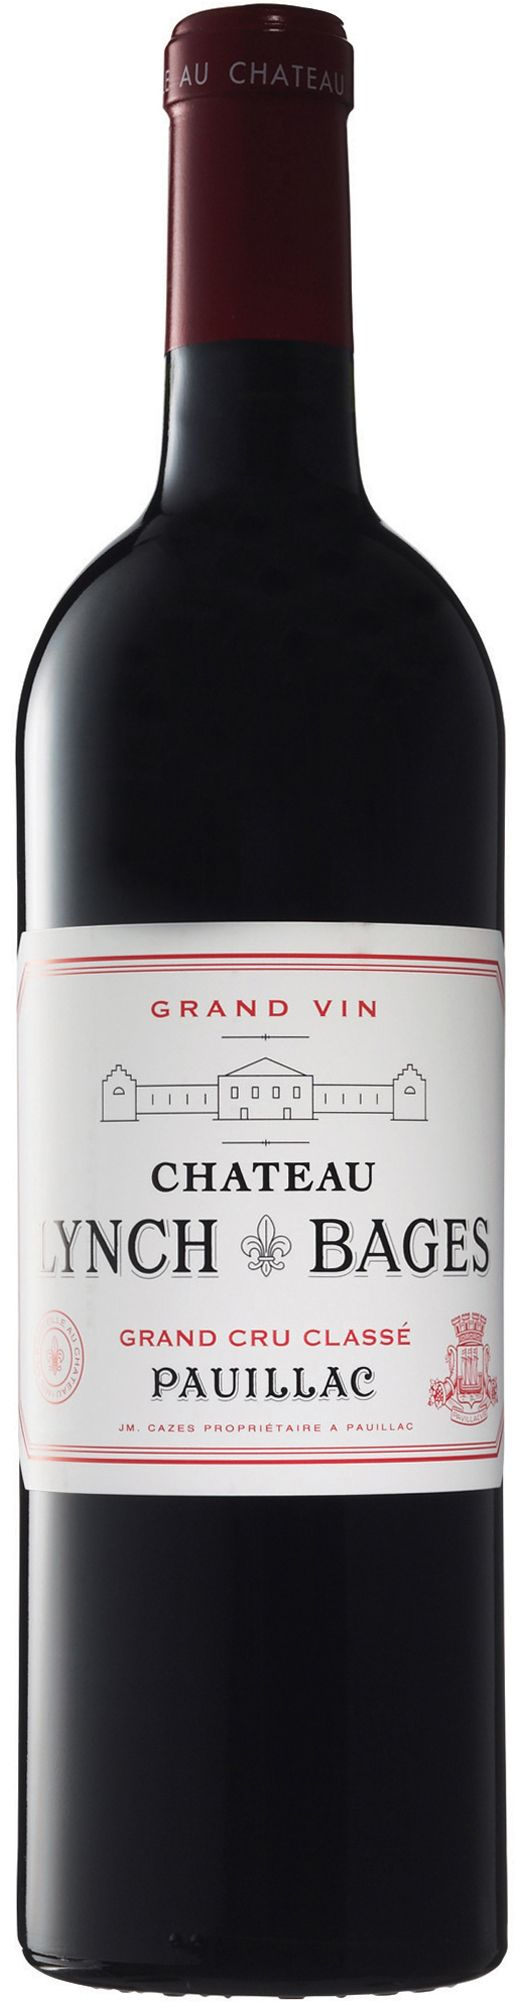 Chateau Lynch-Bages, 2009